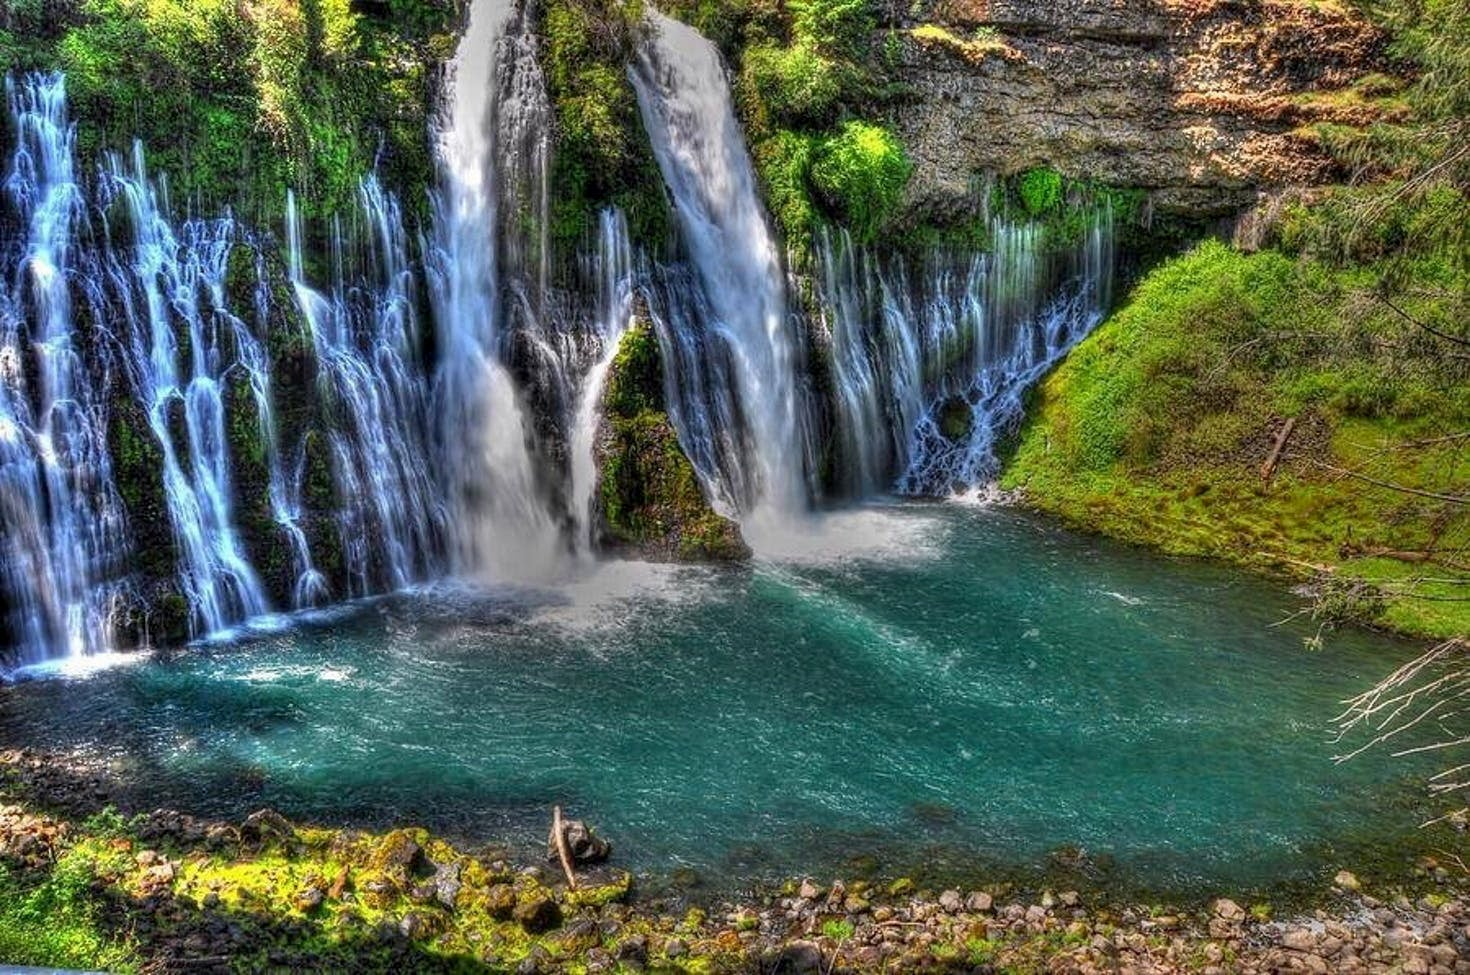 Cascading blue waterfalls surrounded by lush green grass.